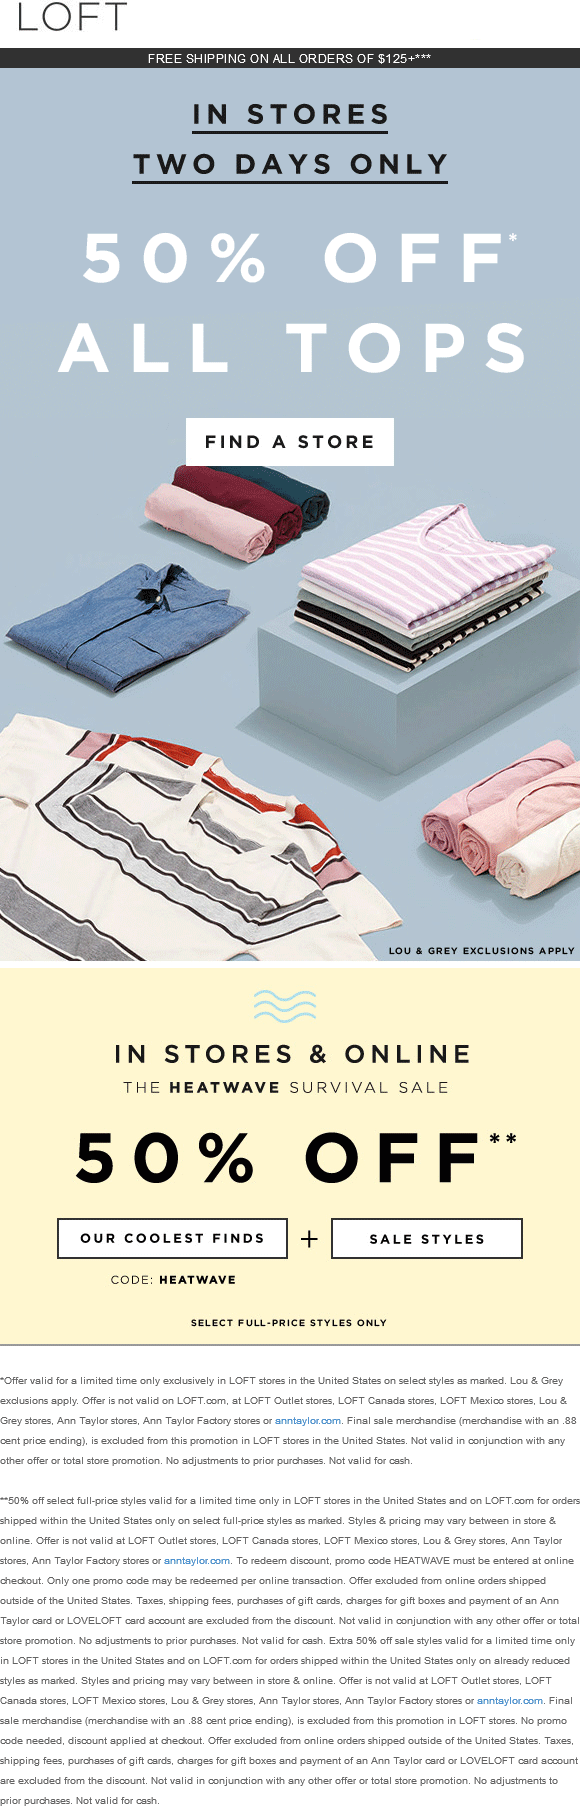 LOFT Coupon July 2018 50% off tops & sale items at LOFT, or online via promo code HEATWAVE